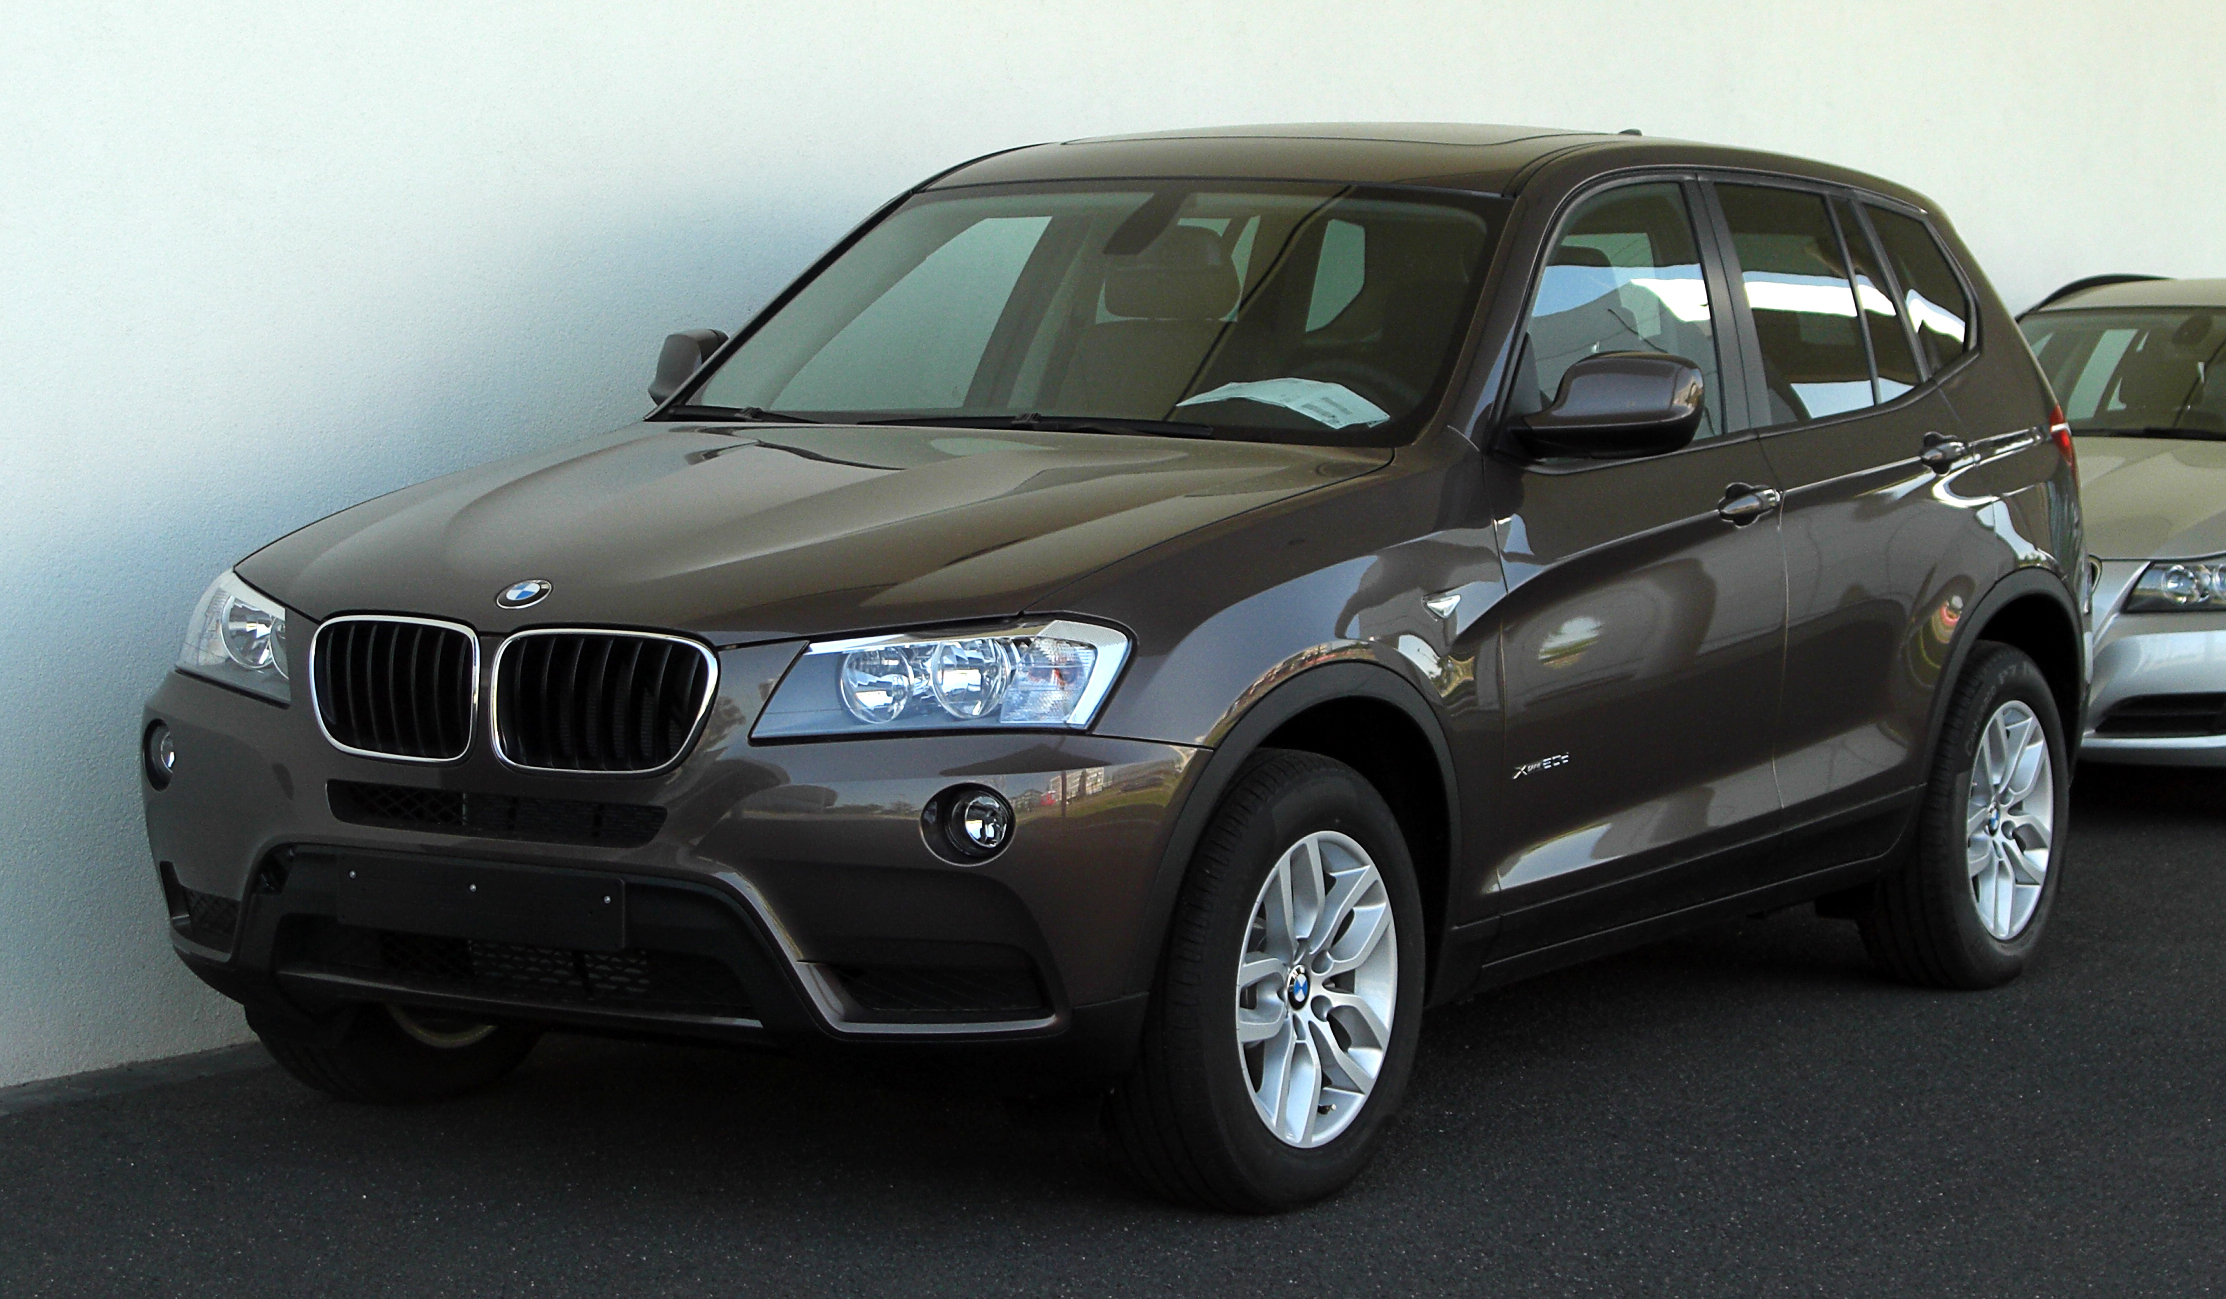 file bmw x3 xdrive20d f25 frontansicht 1 mai 2011 d wikimedia commons. Black Bedroom Furniture Sets. Home Design Ideas